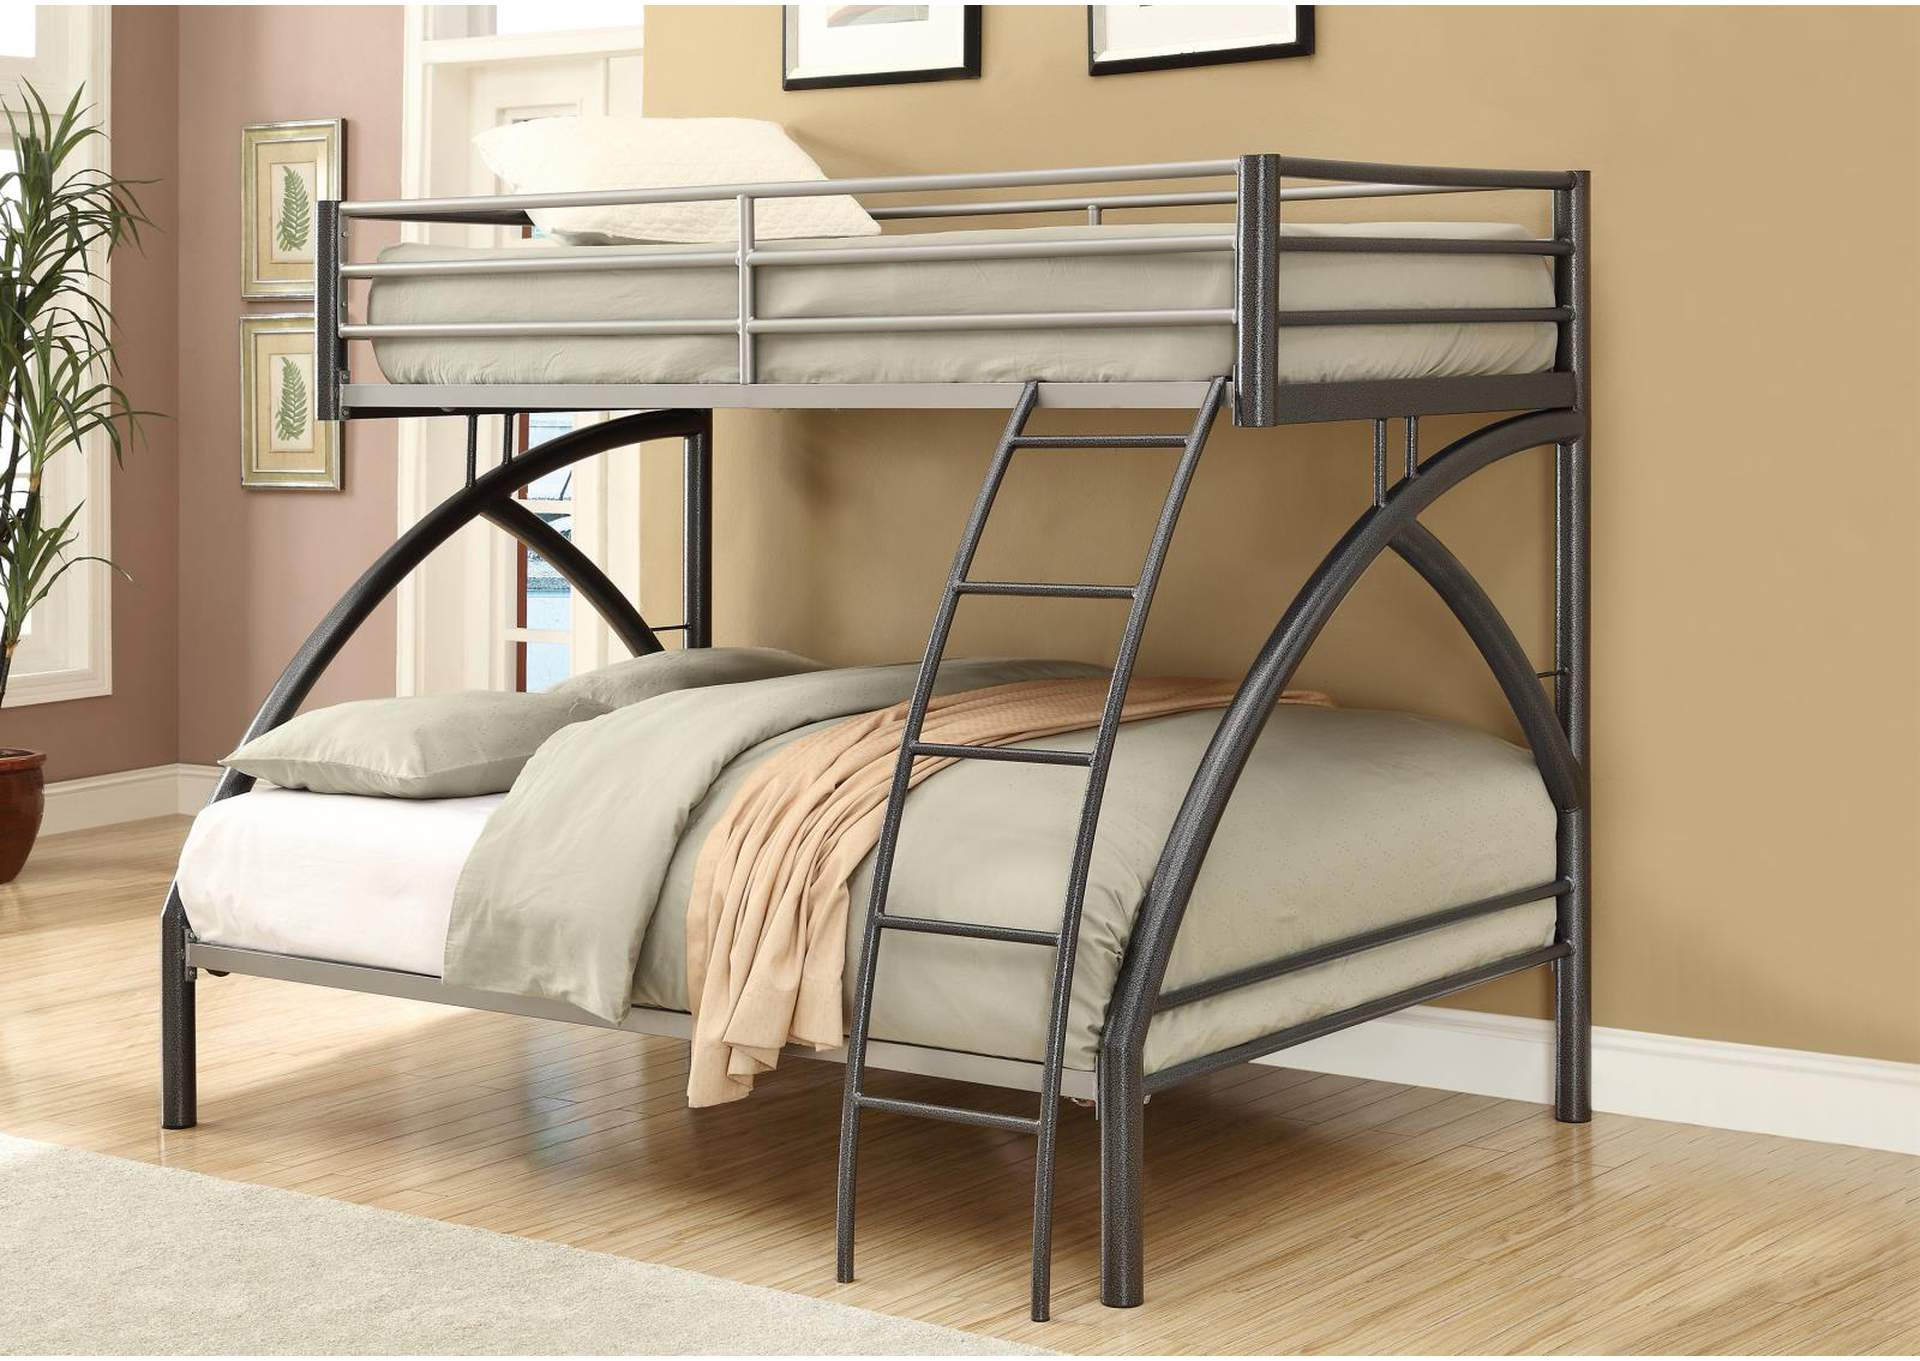 Heathered Gray Twin-over-Full Metal Bunk Bed,Coaster Furniture